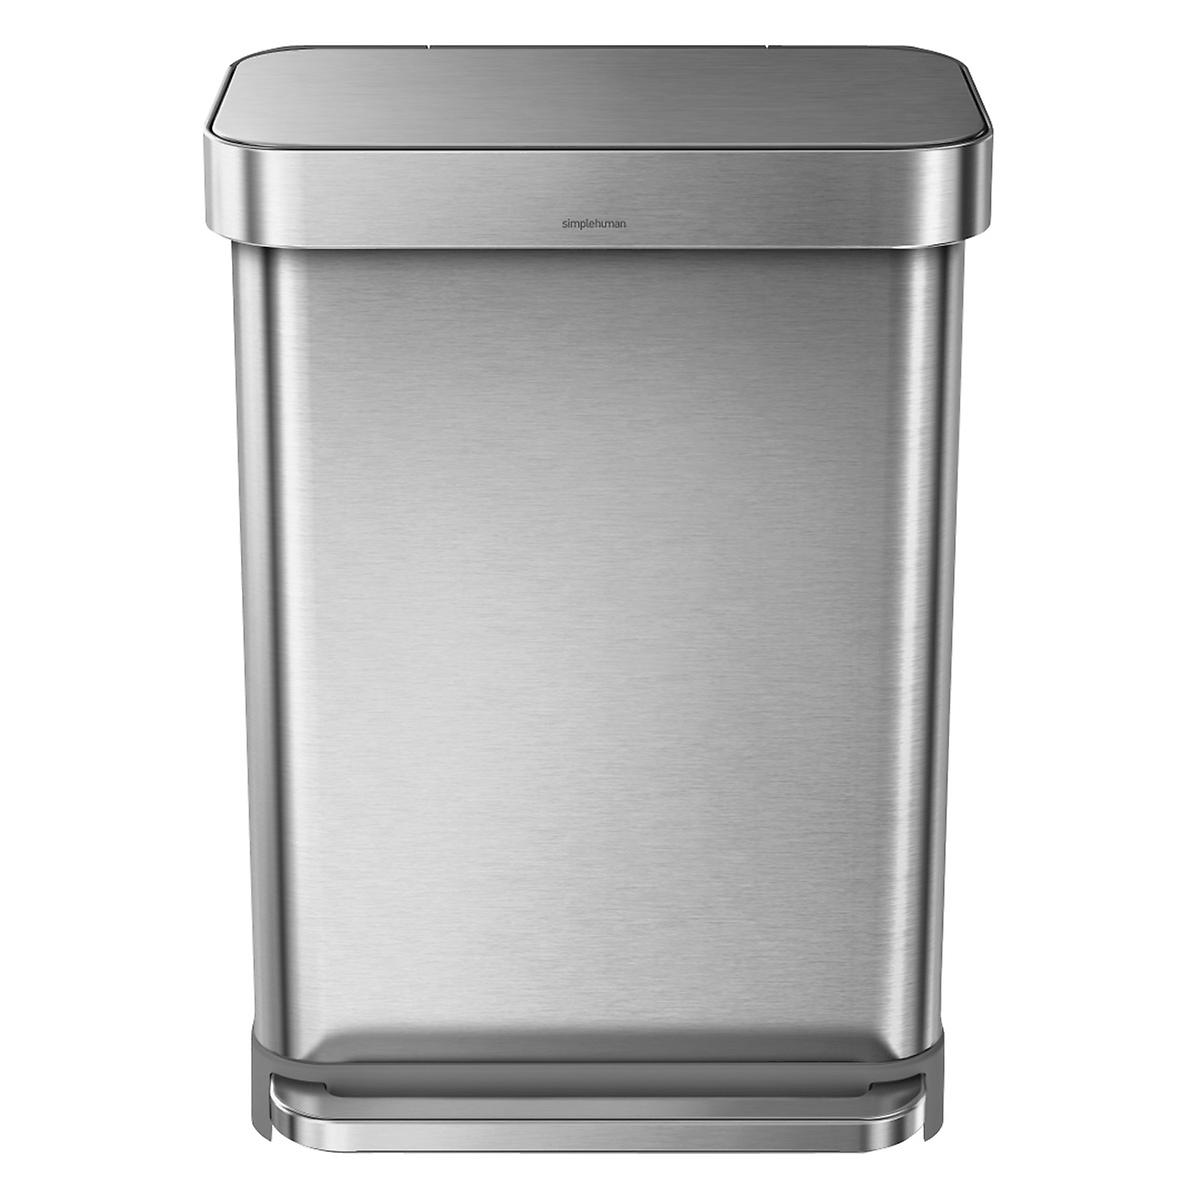 Stainless Steel Kitchen Garbage Can: Simplehuman Stainless Steel 14.4 Gal. Rectangular Trash